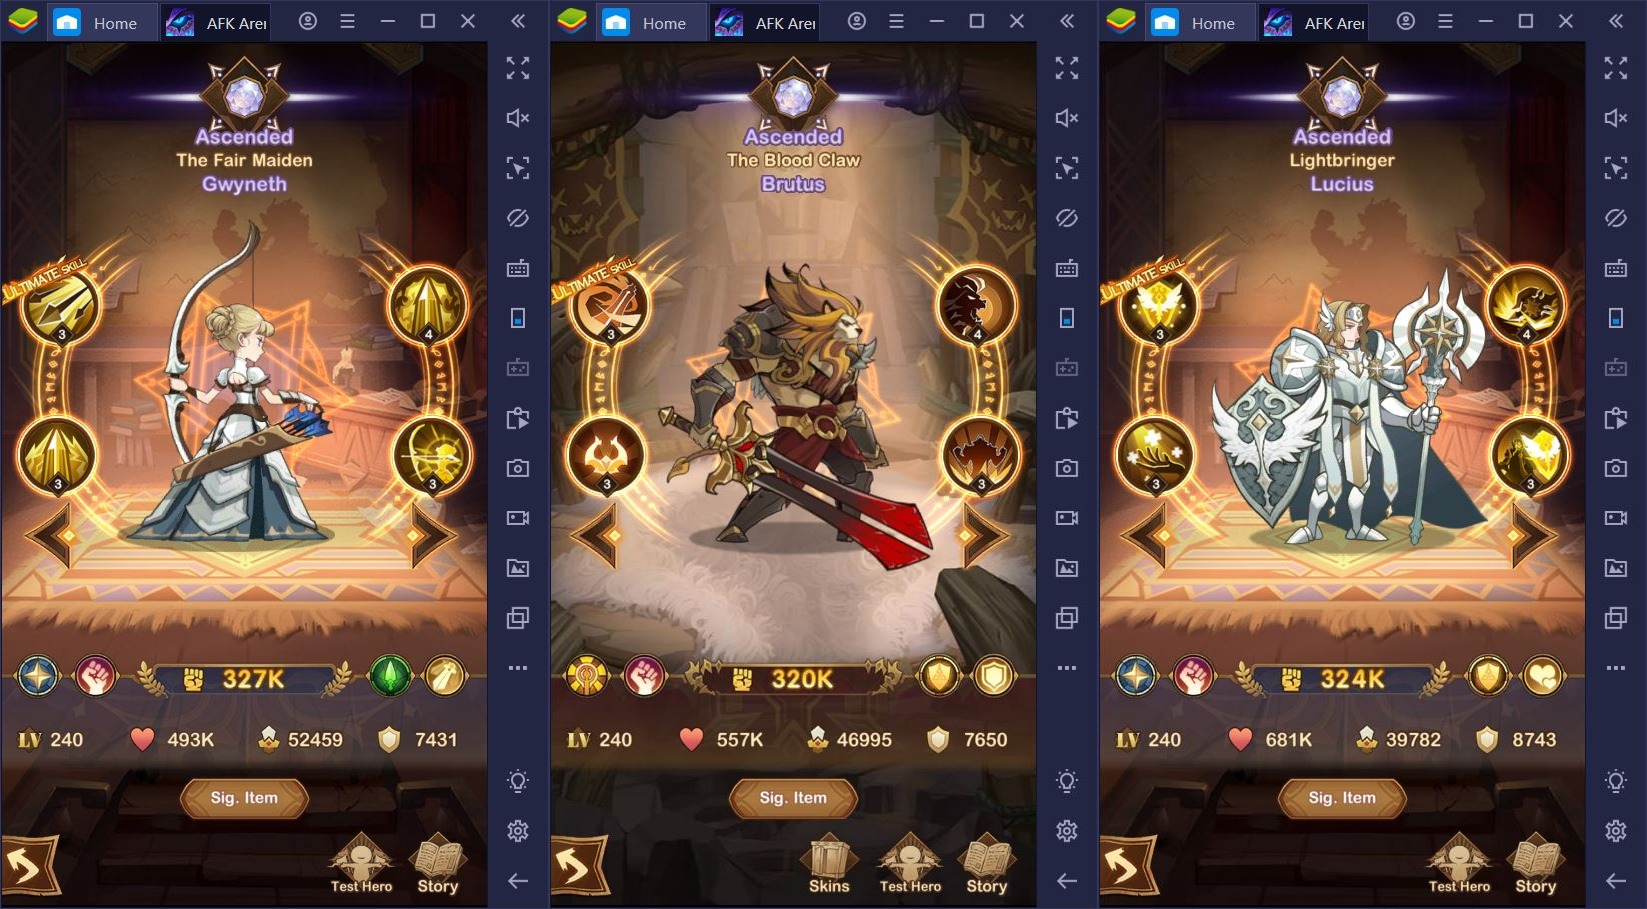 AFK Arena on PC: The Best Late-Game Heroes in 2020